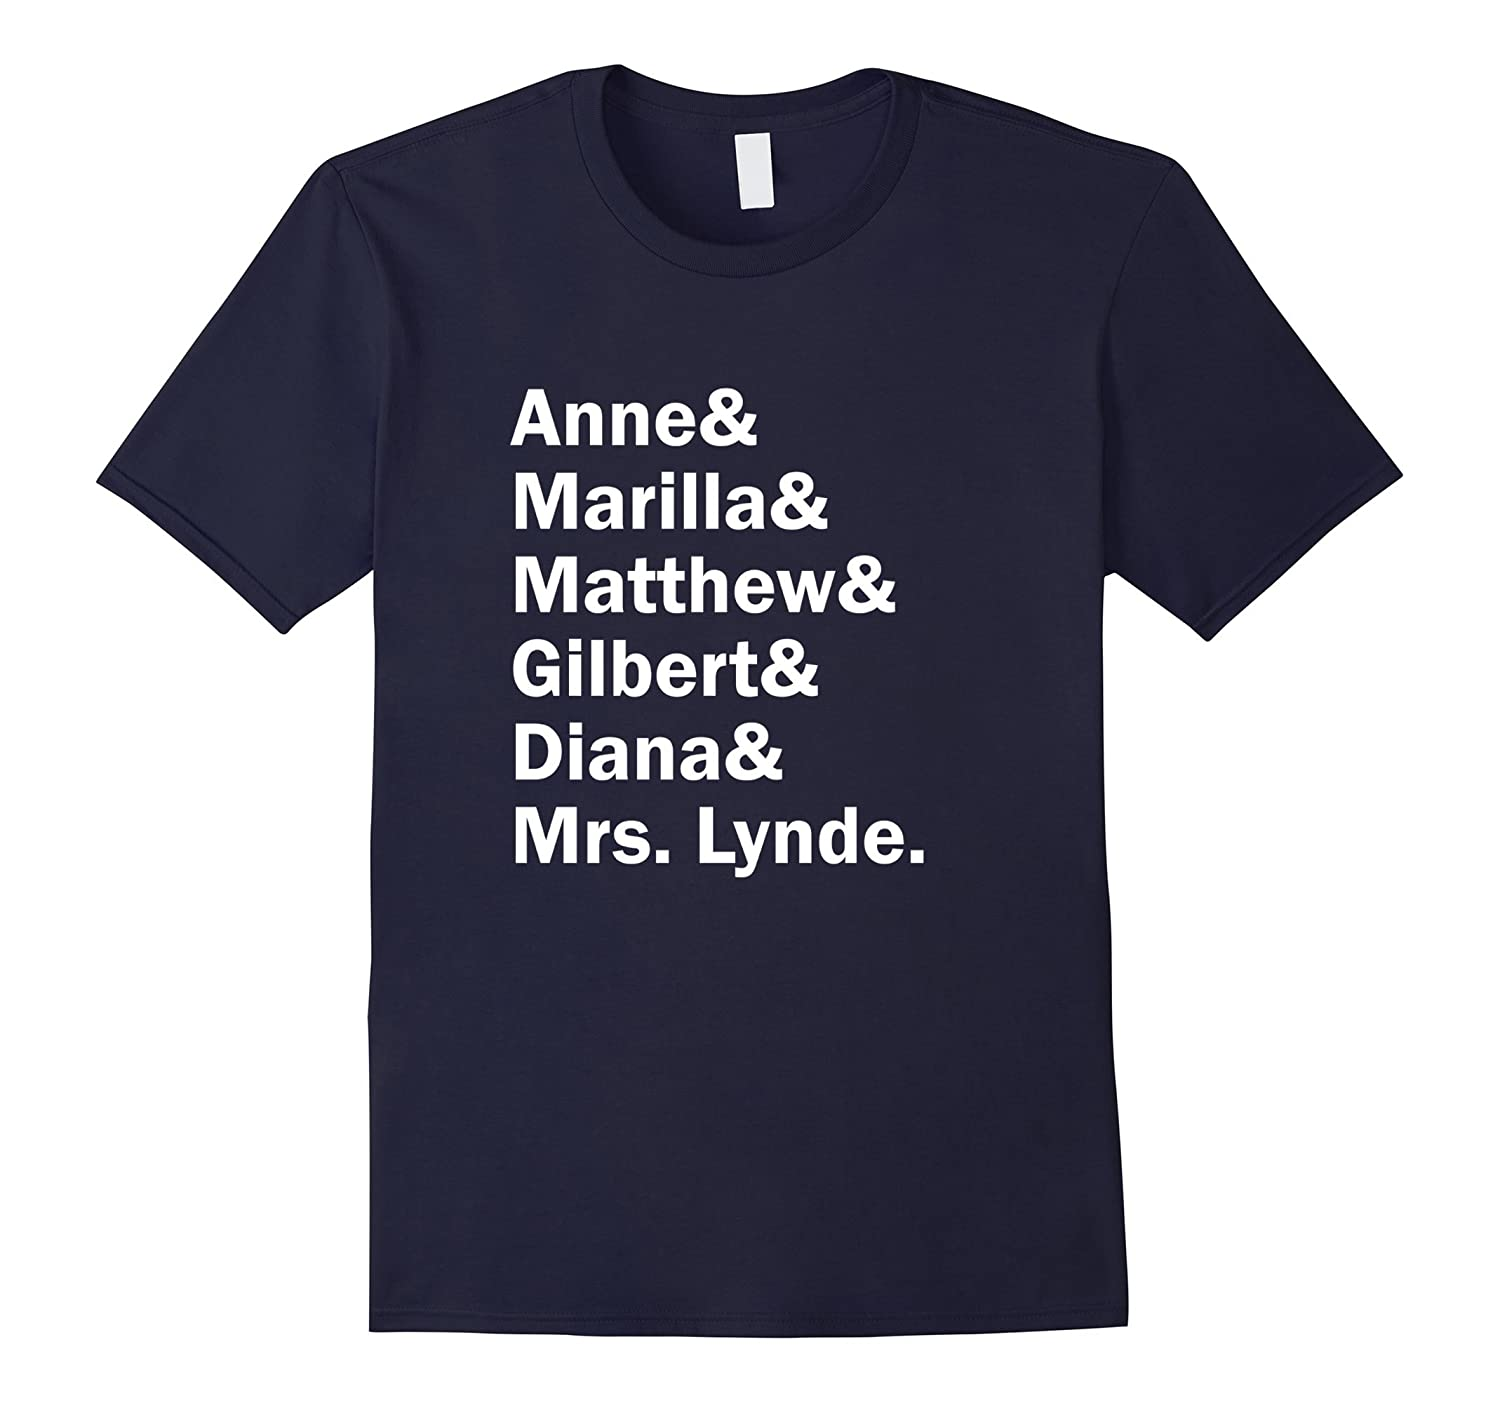 Anne of Green Gables Character List T-Shirt - L.M.Montgomery-FL